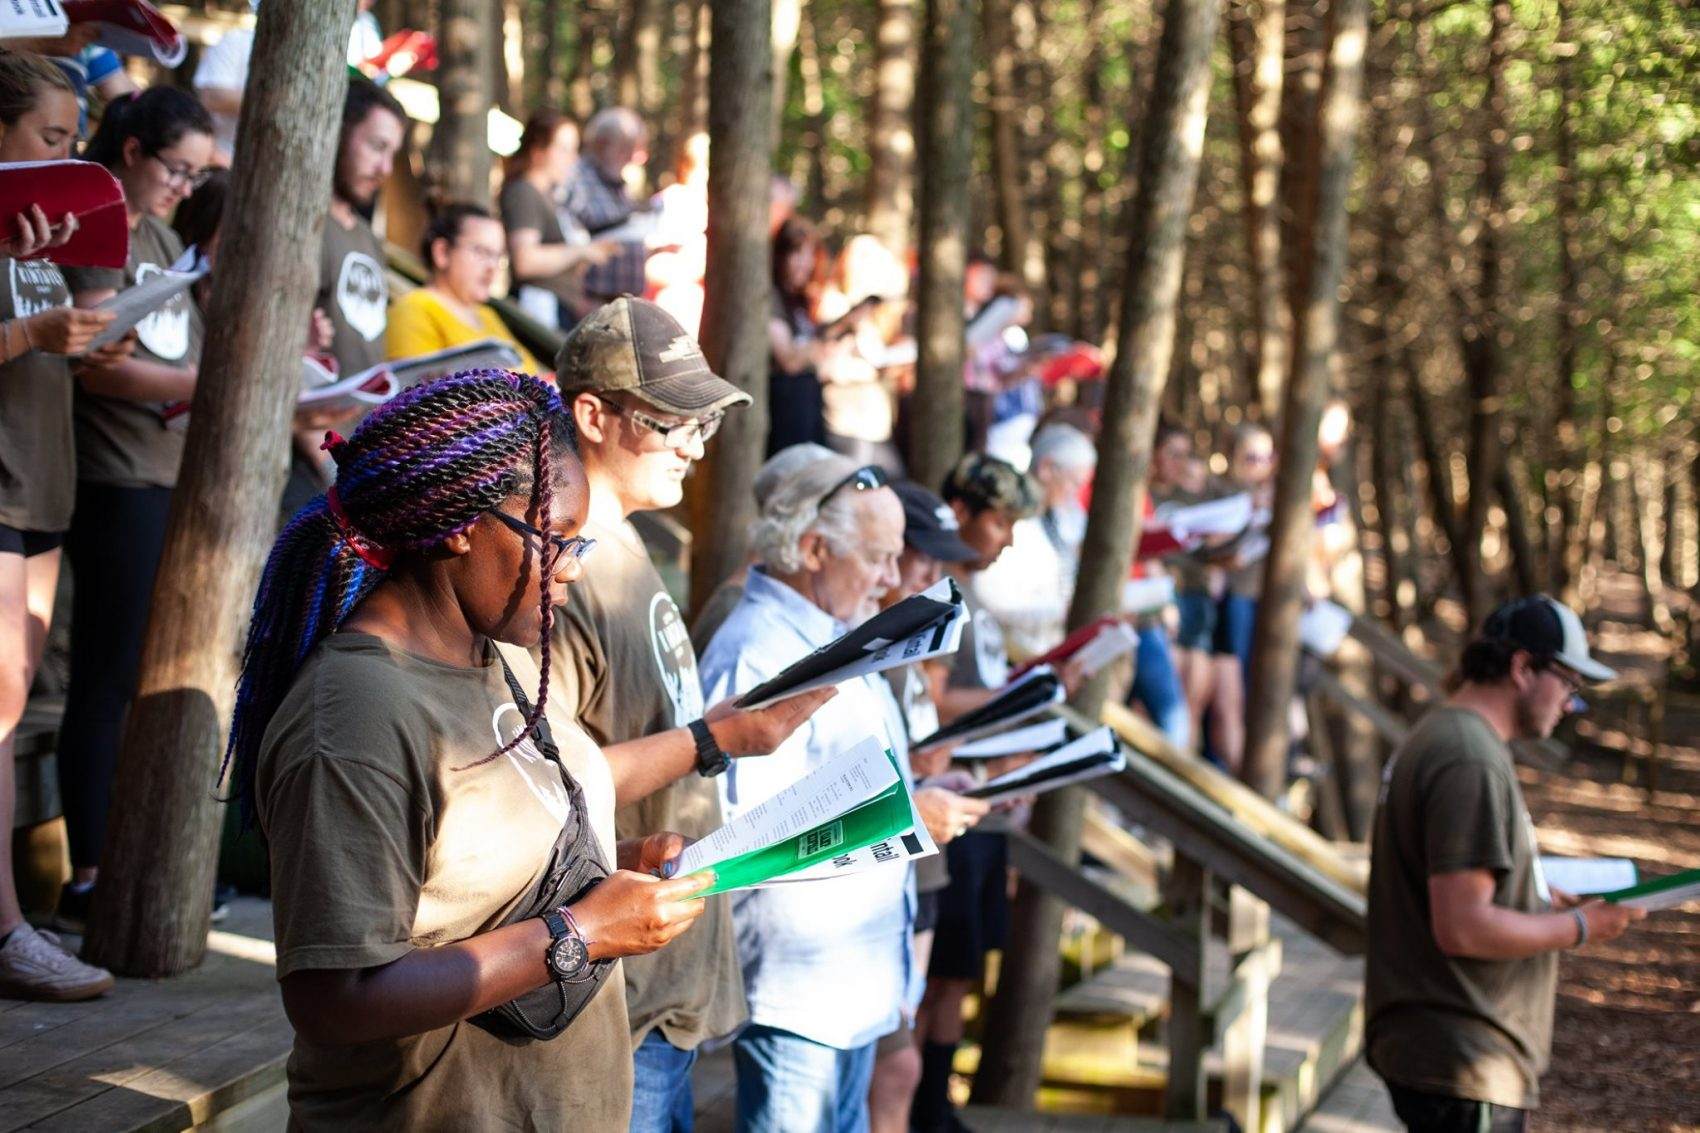 A group of adults standing in theatre seating are reading and singing out of songbooks in the Outdoor Chapel at summer camp.